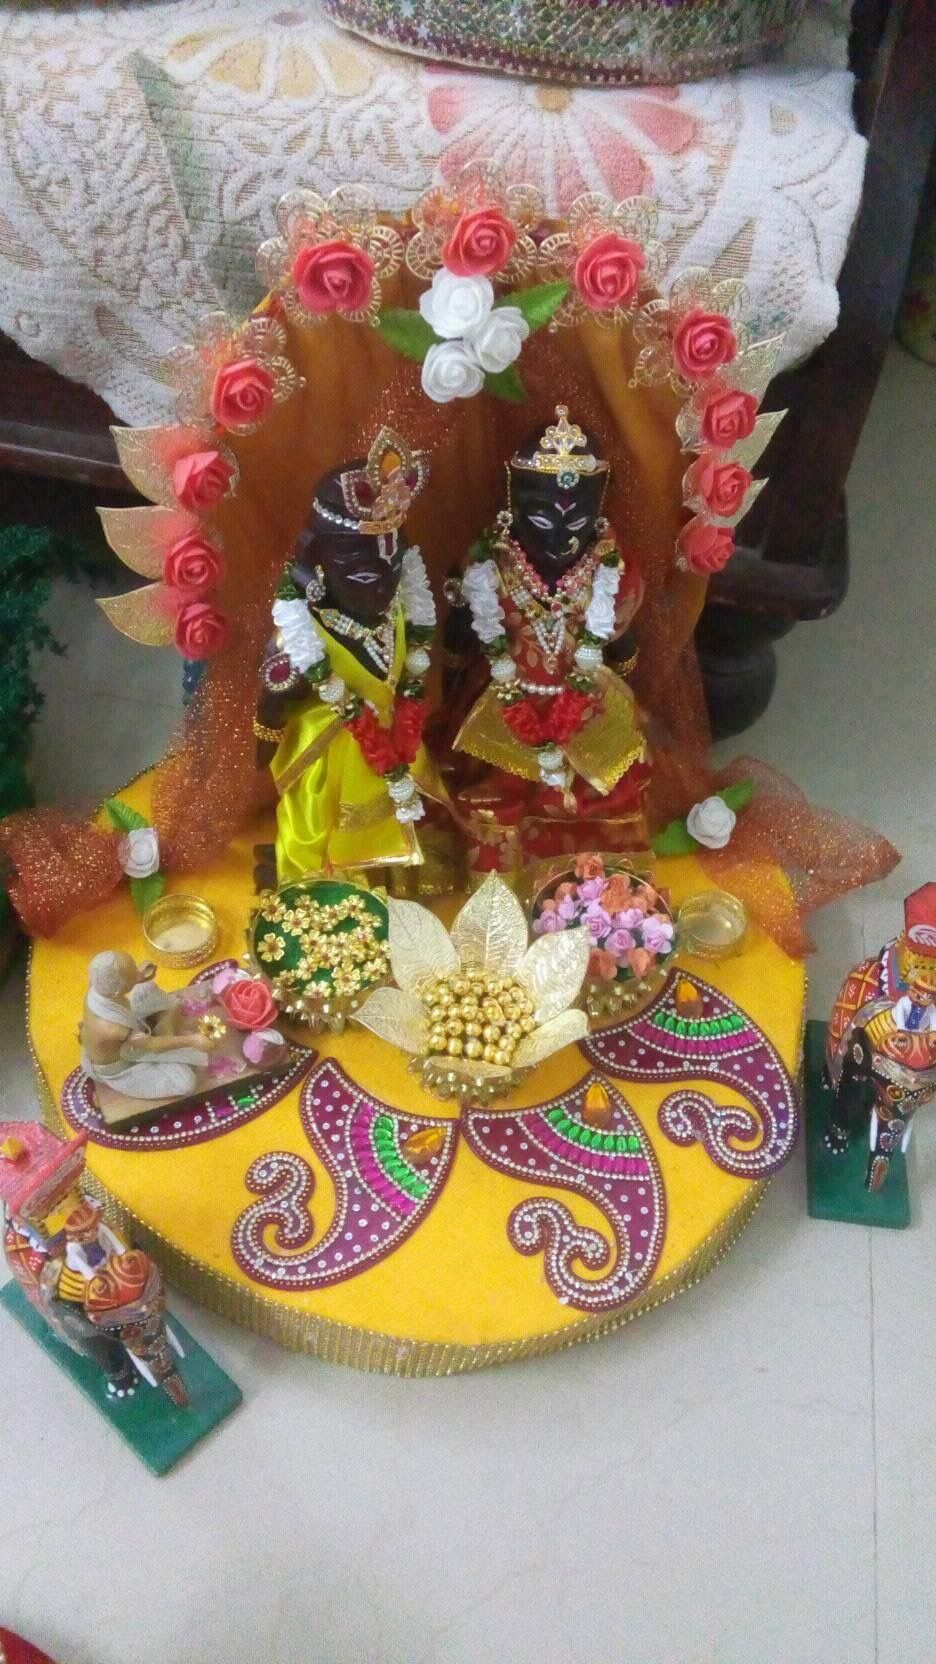 Durga Puja Decorative Items Ganesh Paper Quilling Embellishments Basket Hobbies Marriage Mariage